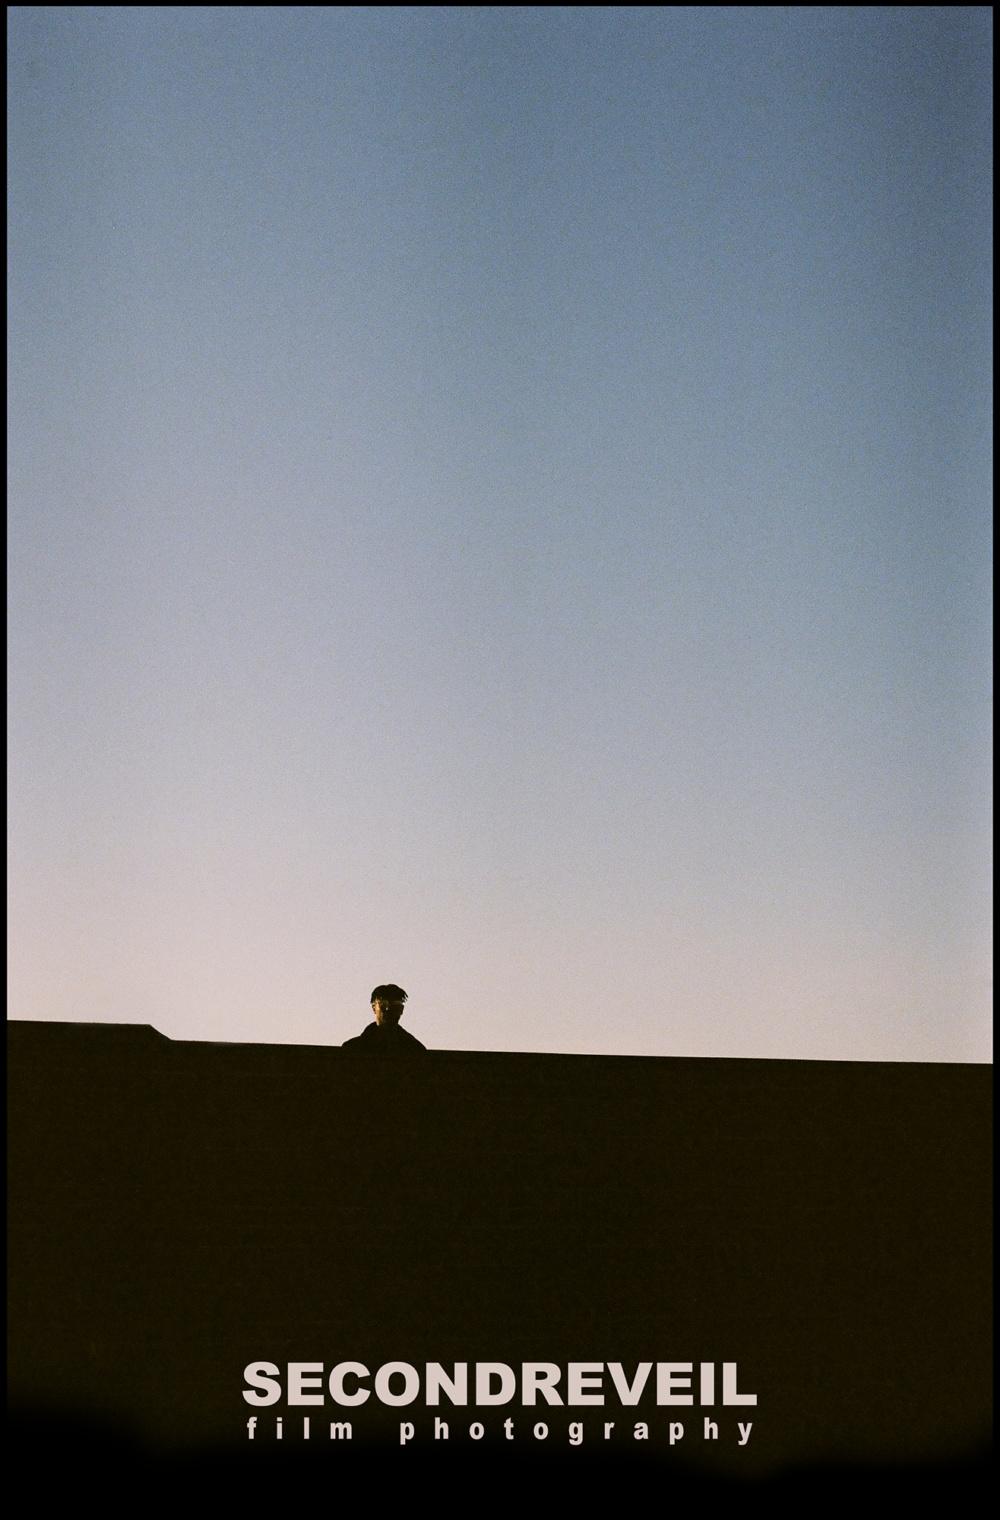 MONTREAL-FILM-PHOTO-STREET-PHOTO-QUENTIN-ANDRUP